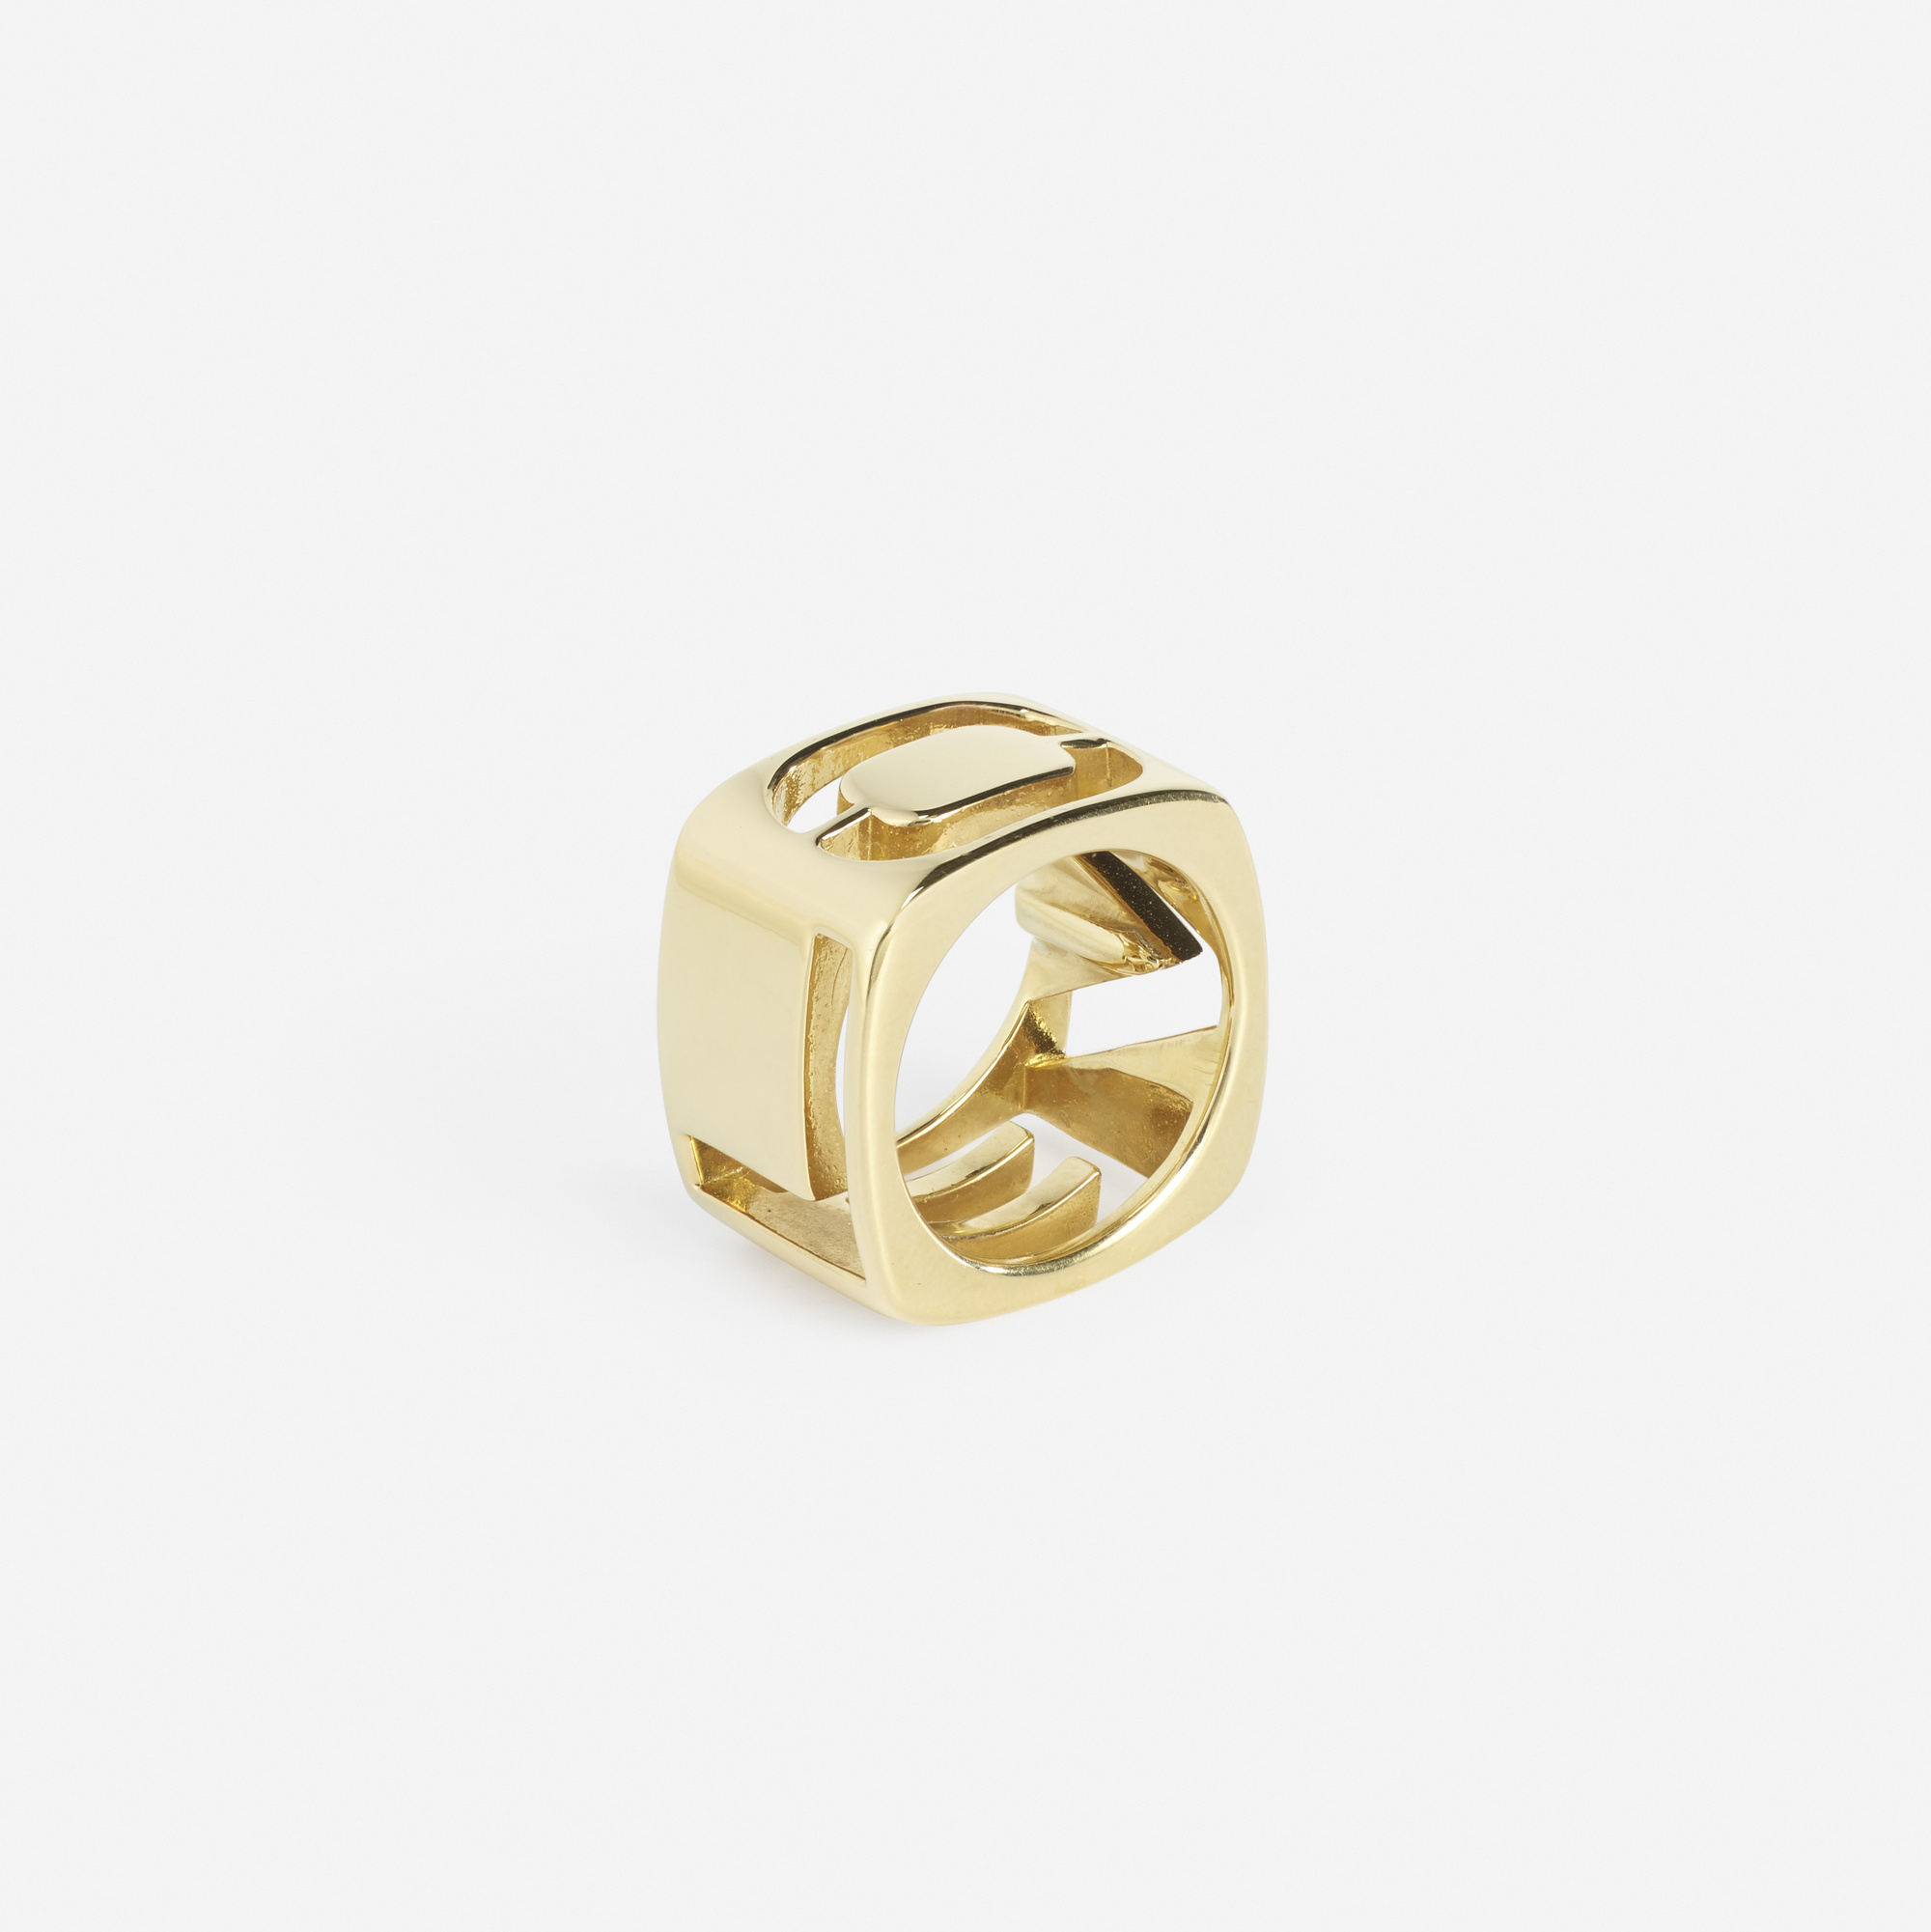 230: Tiffany & Co. / A gold Love ring (1 of 2)